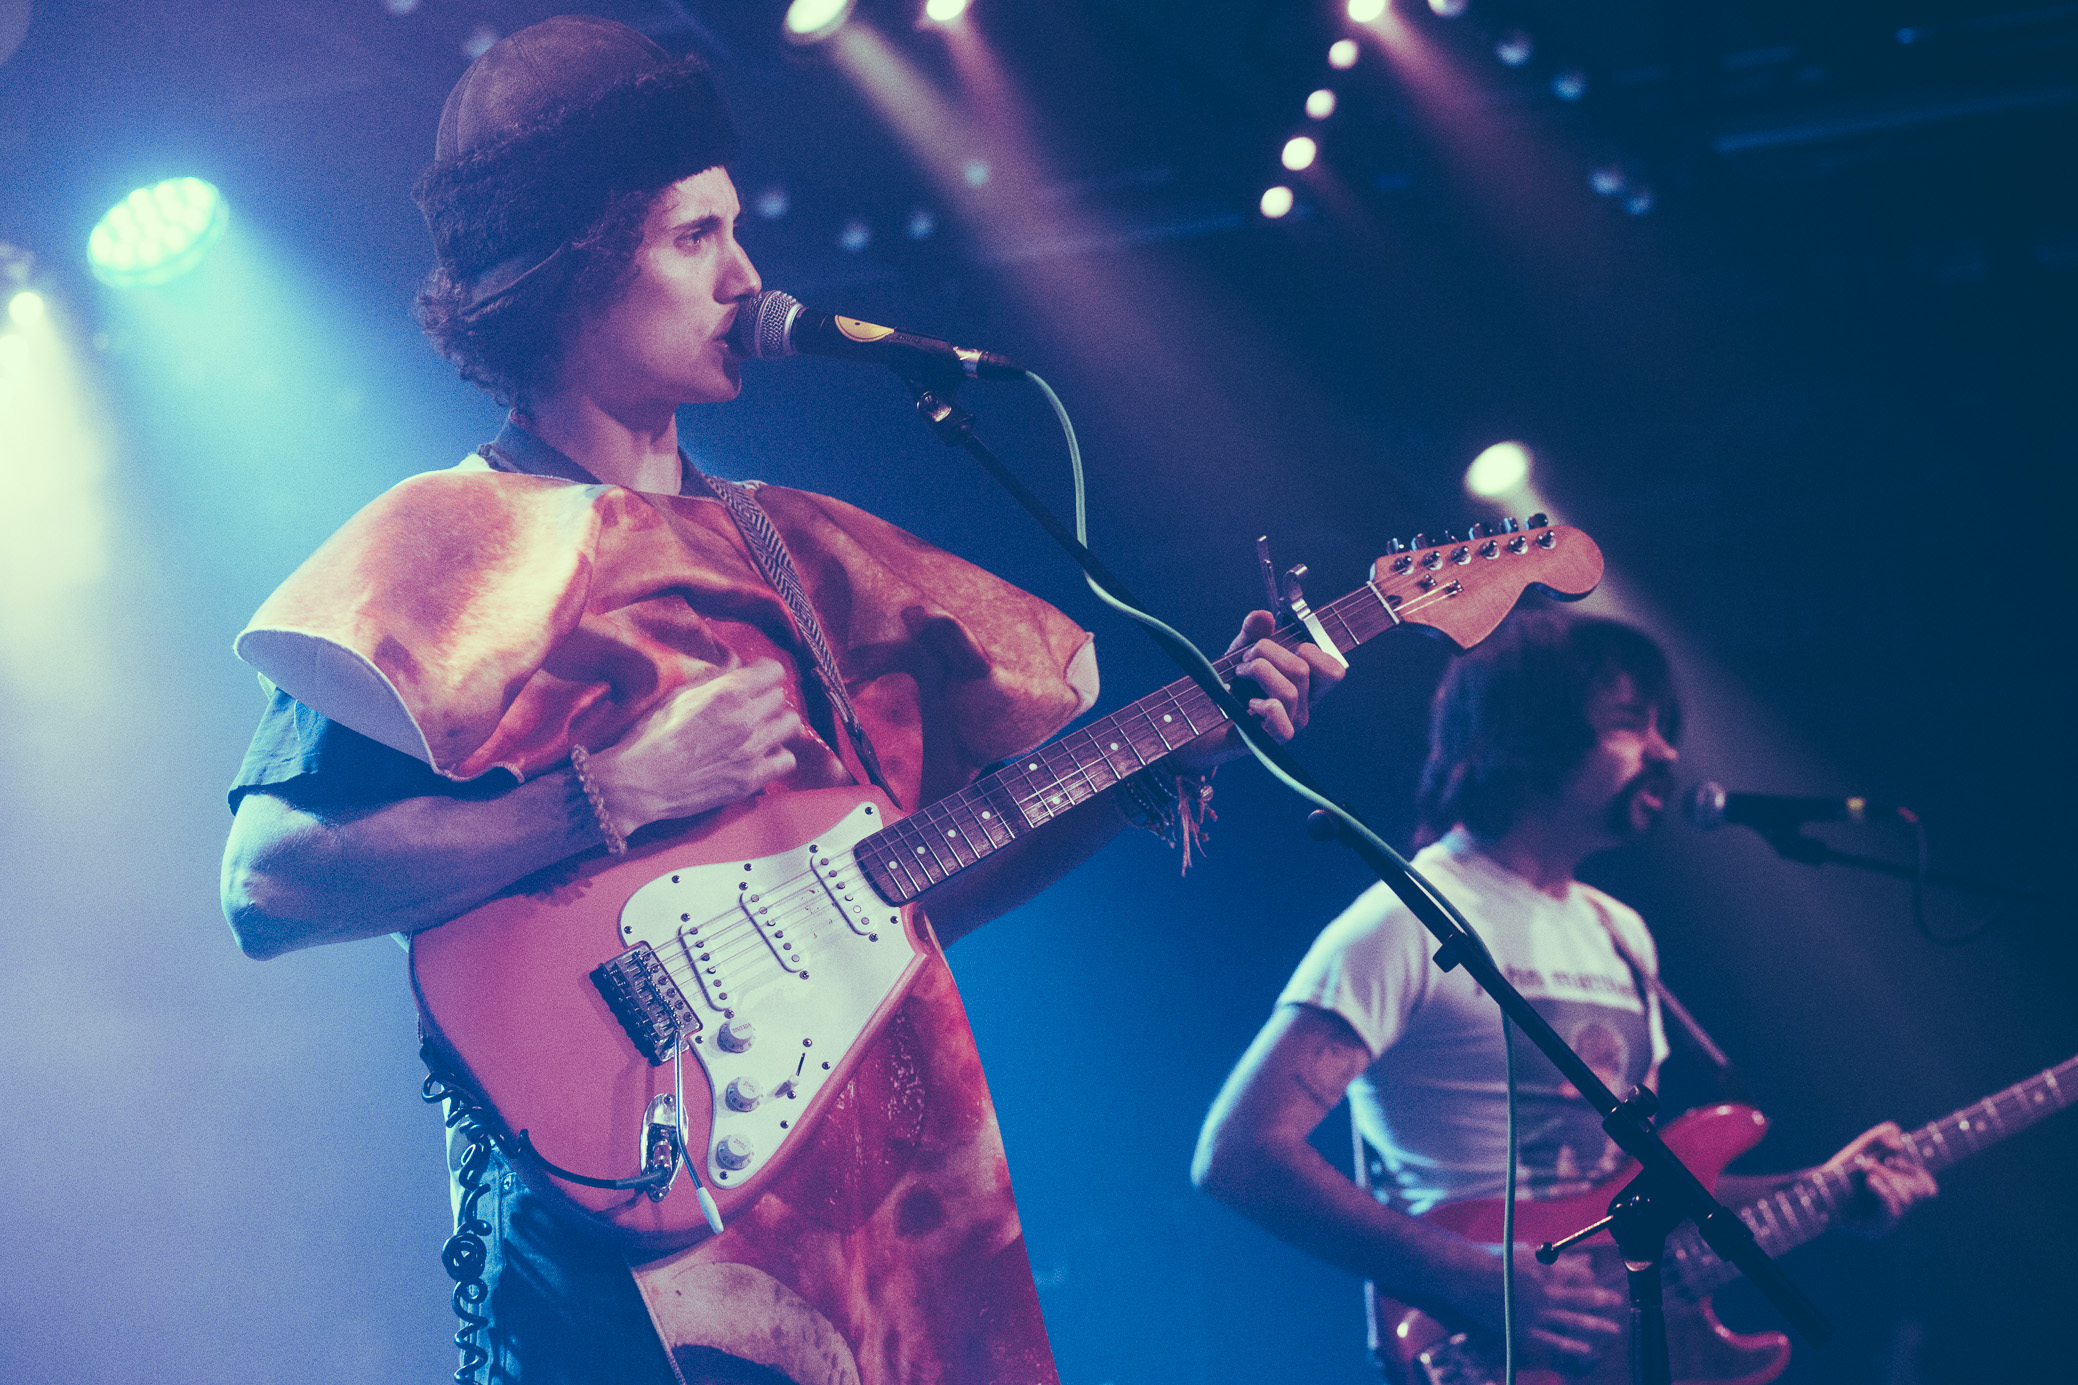 Ron Gallo performs in concert at Saturn Birmingham in Birmingham, Alabama on February 26th, 2019. (Photo by David A. Smith / DSmithScenes)